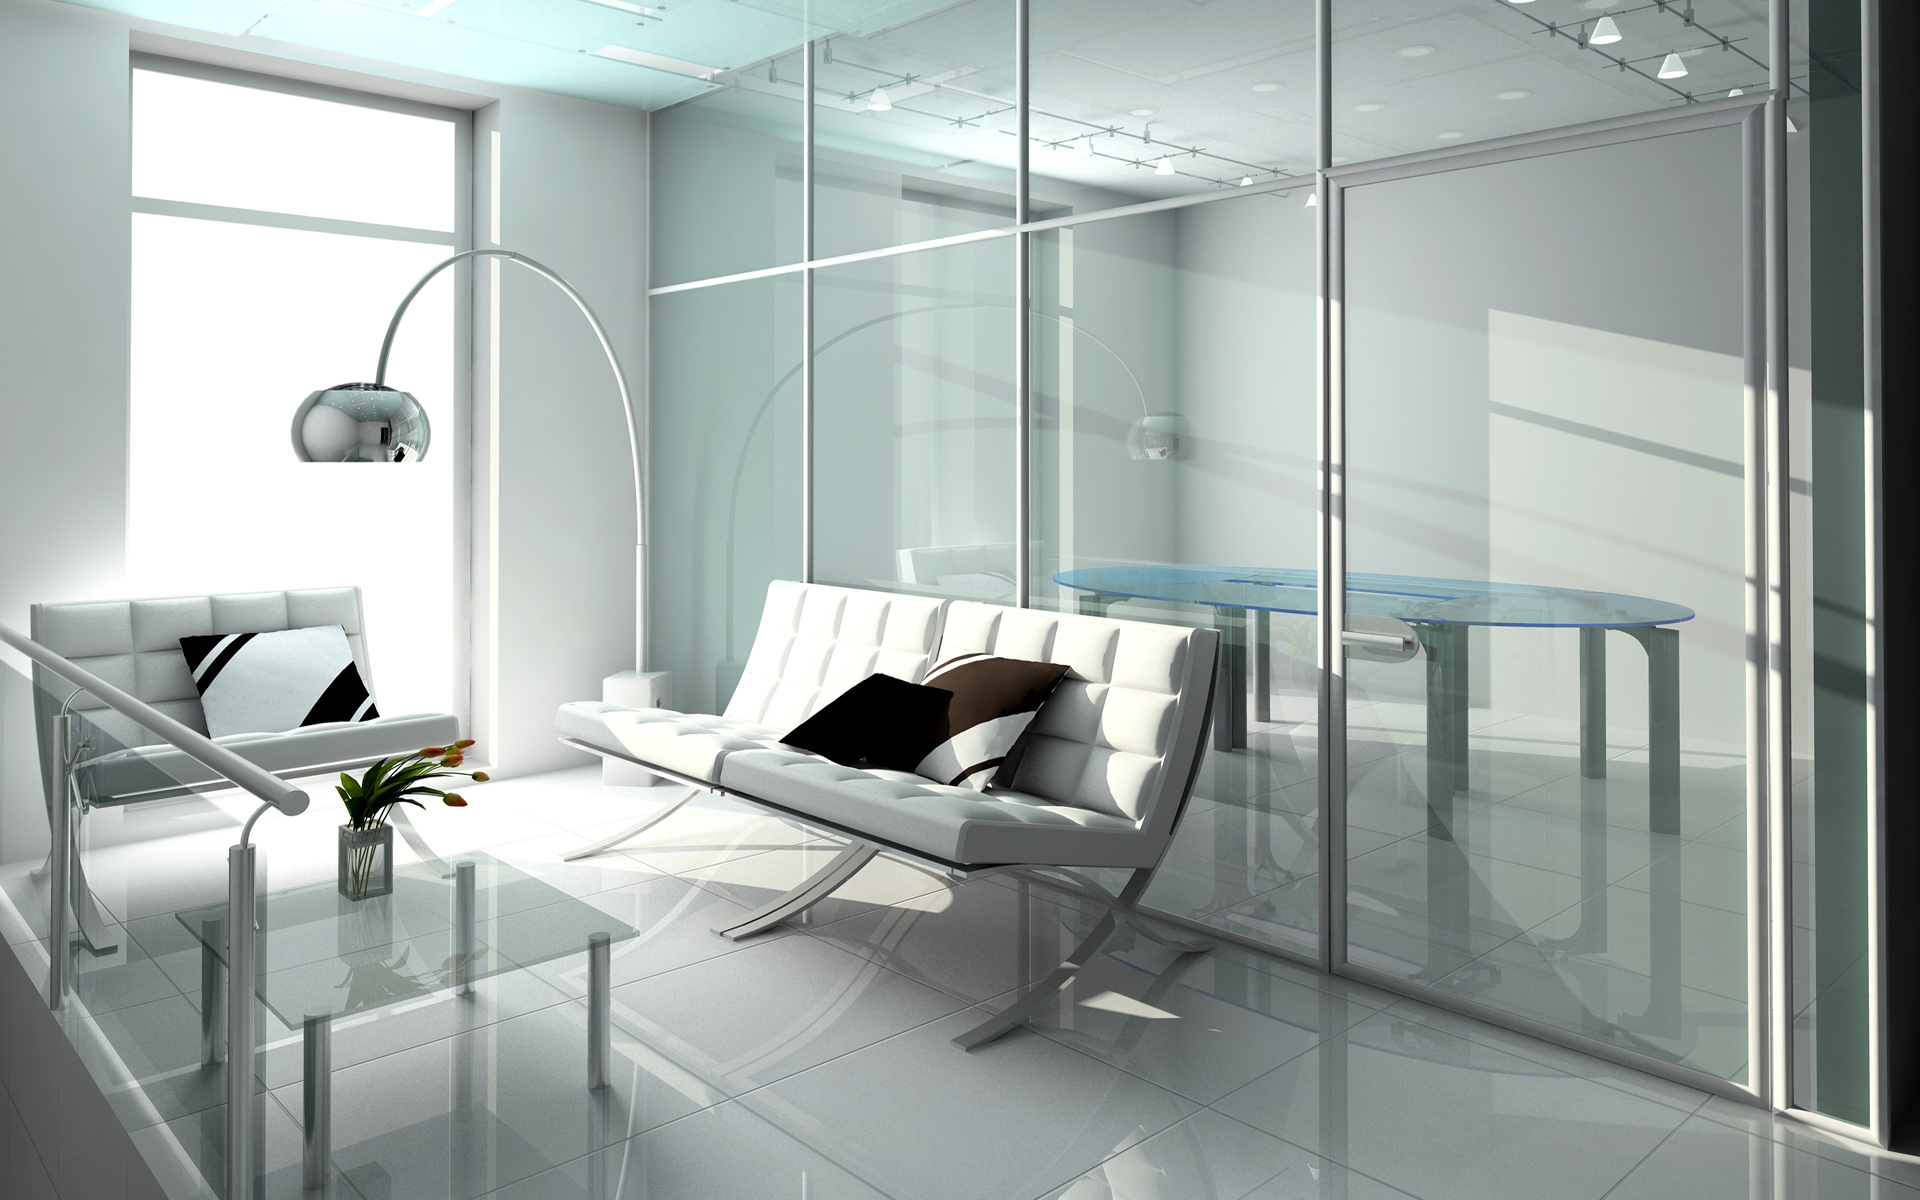 Small Office Waiting Room Design Ideas 3466 Wallpapers Small Office  1920x1200